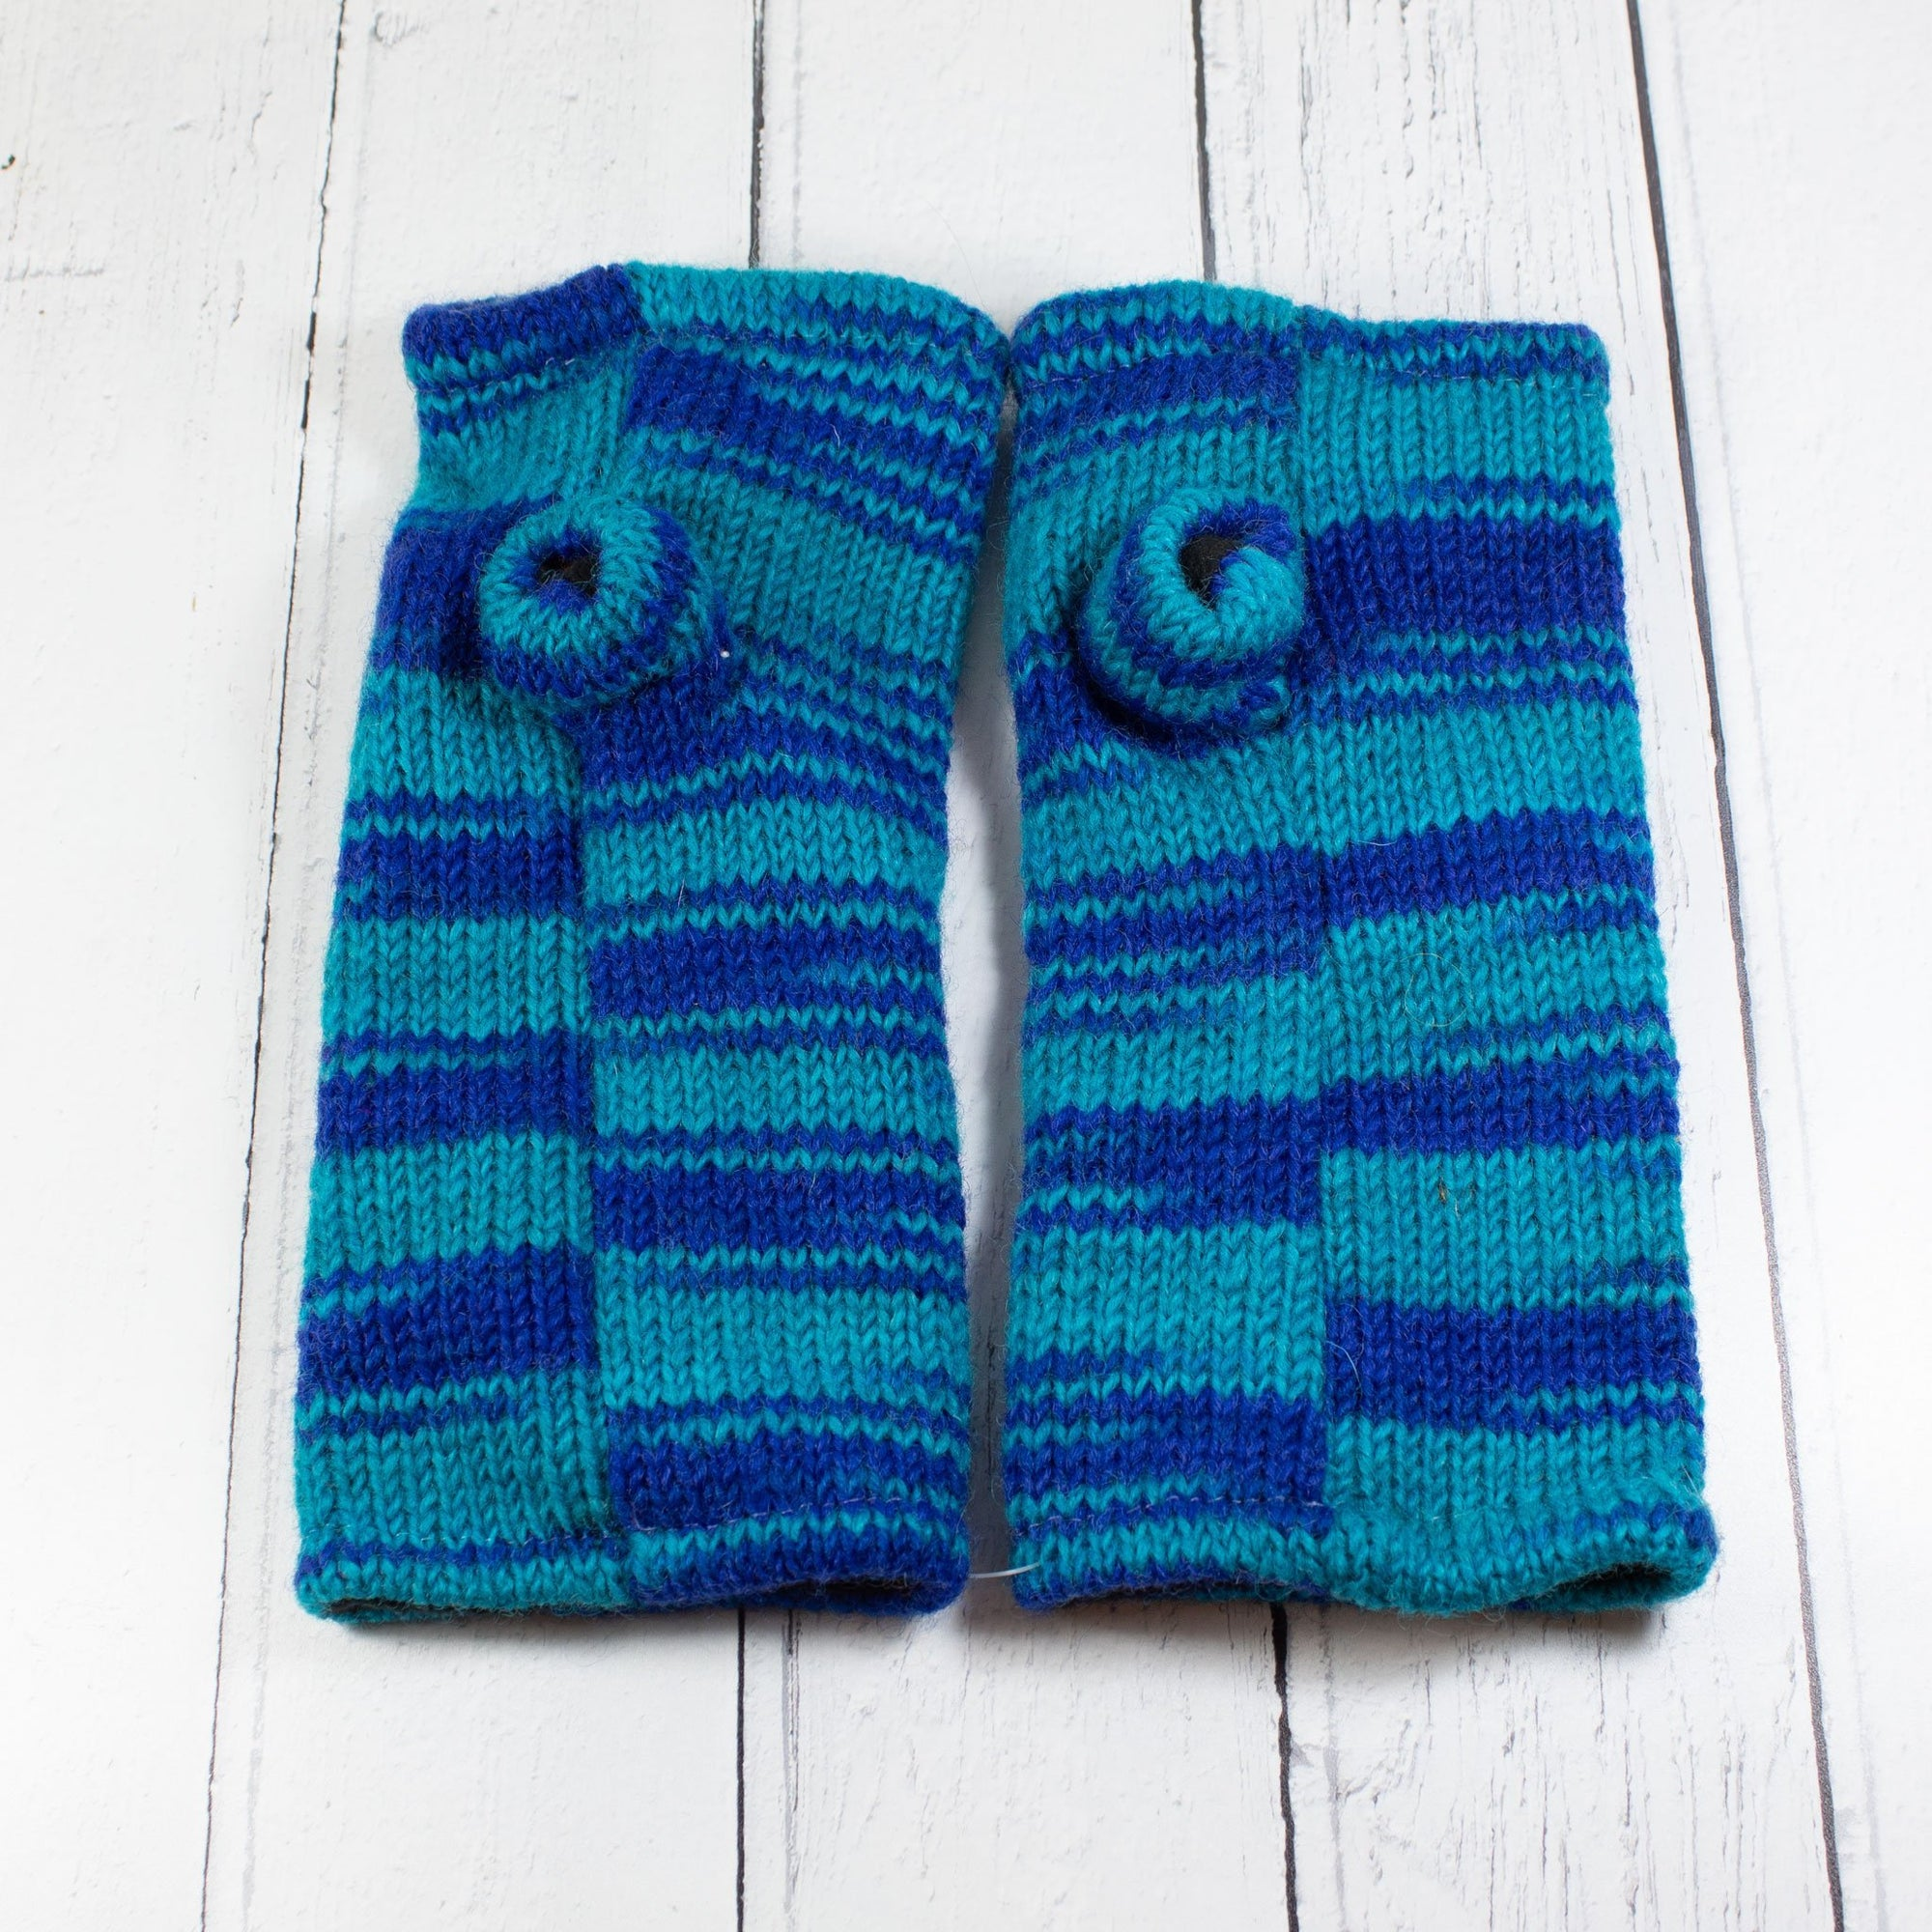 Blue & Turquoise Fingerless Gloves | Gloves - The Naughty Shrew